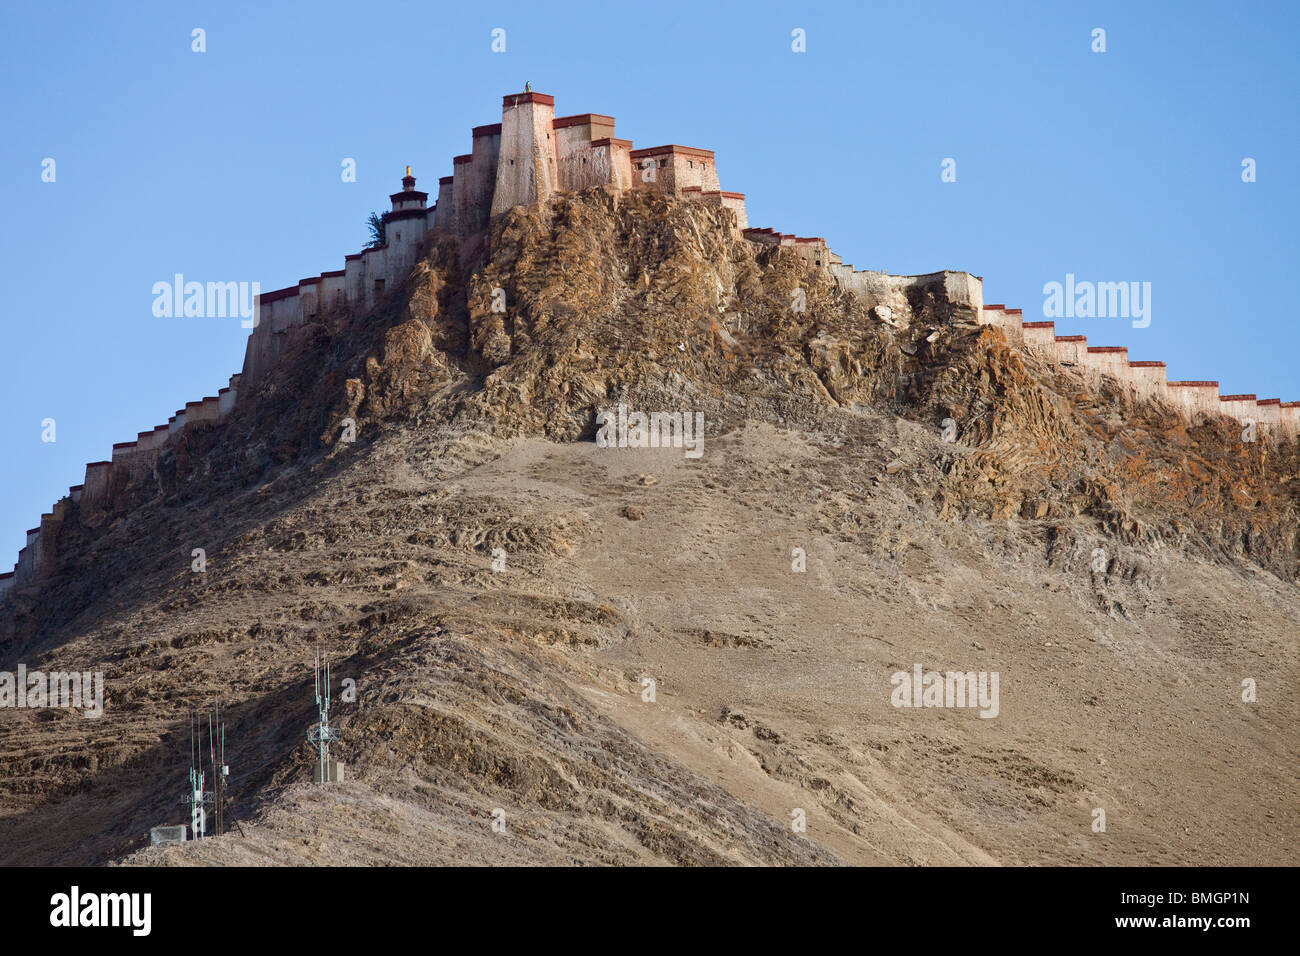 Gyantse Dzong or Fortress in Gyantse, Tibet - Stock Image